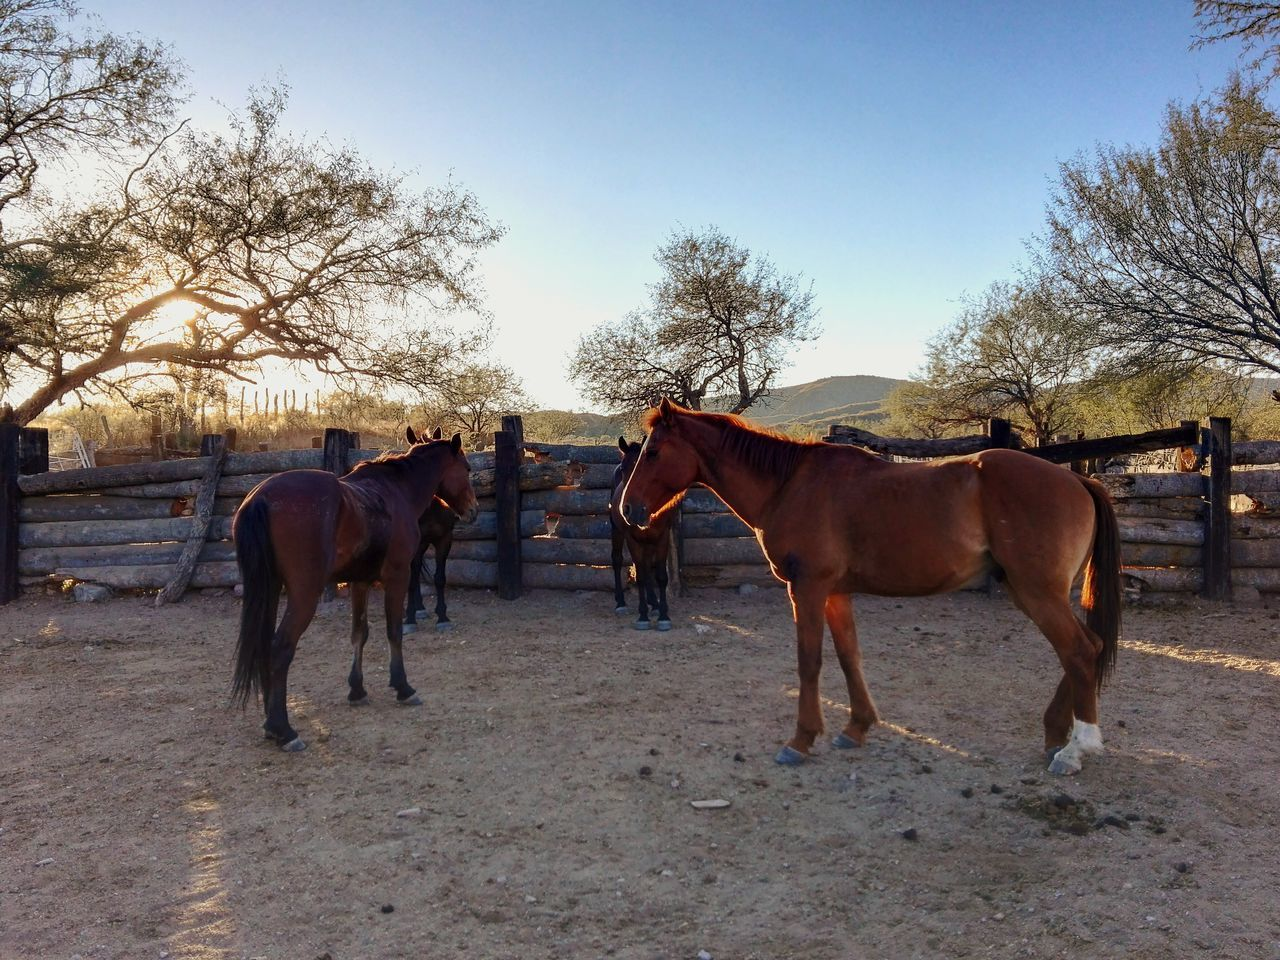 Horse Animal Themes Outdoors Animals In The Wild No People Nature Ranch Camping Horses Horse Riding Horse Photography  Sunlit Sunlight Sunset